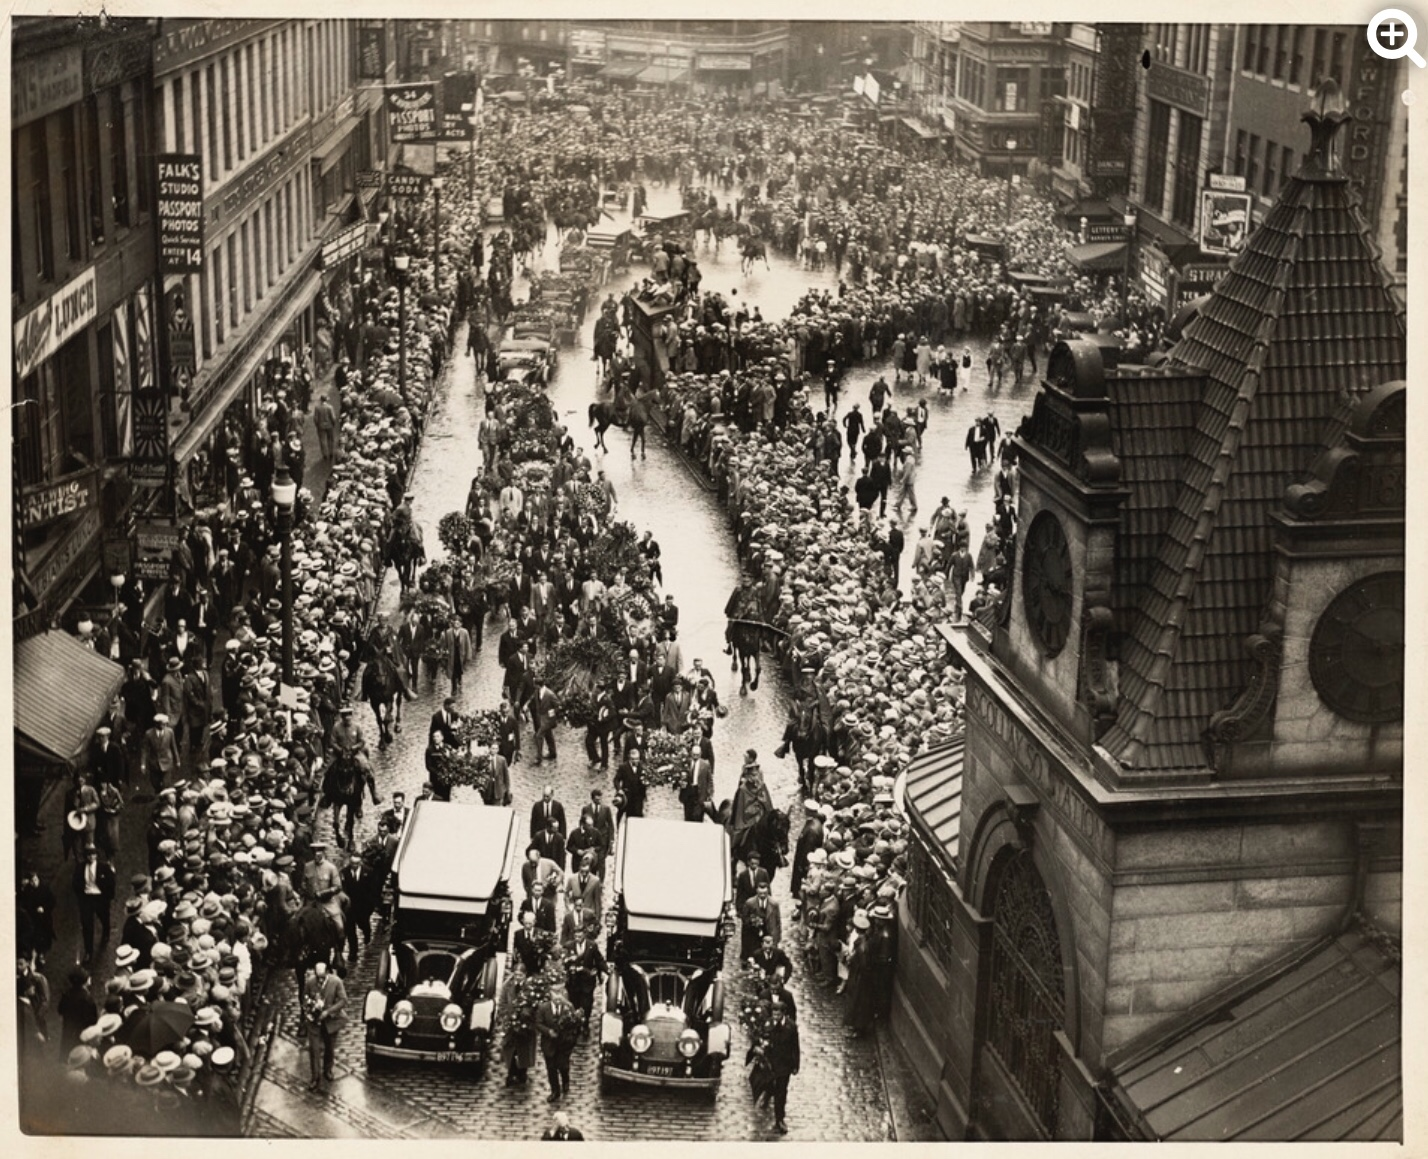 In 1927, tens of thousands of people filled Boston streets to mourn the execution of Sacco and Vanzetti forming the largest crowd the city had ever seen in that time and for many more years to come.